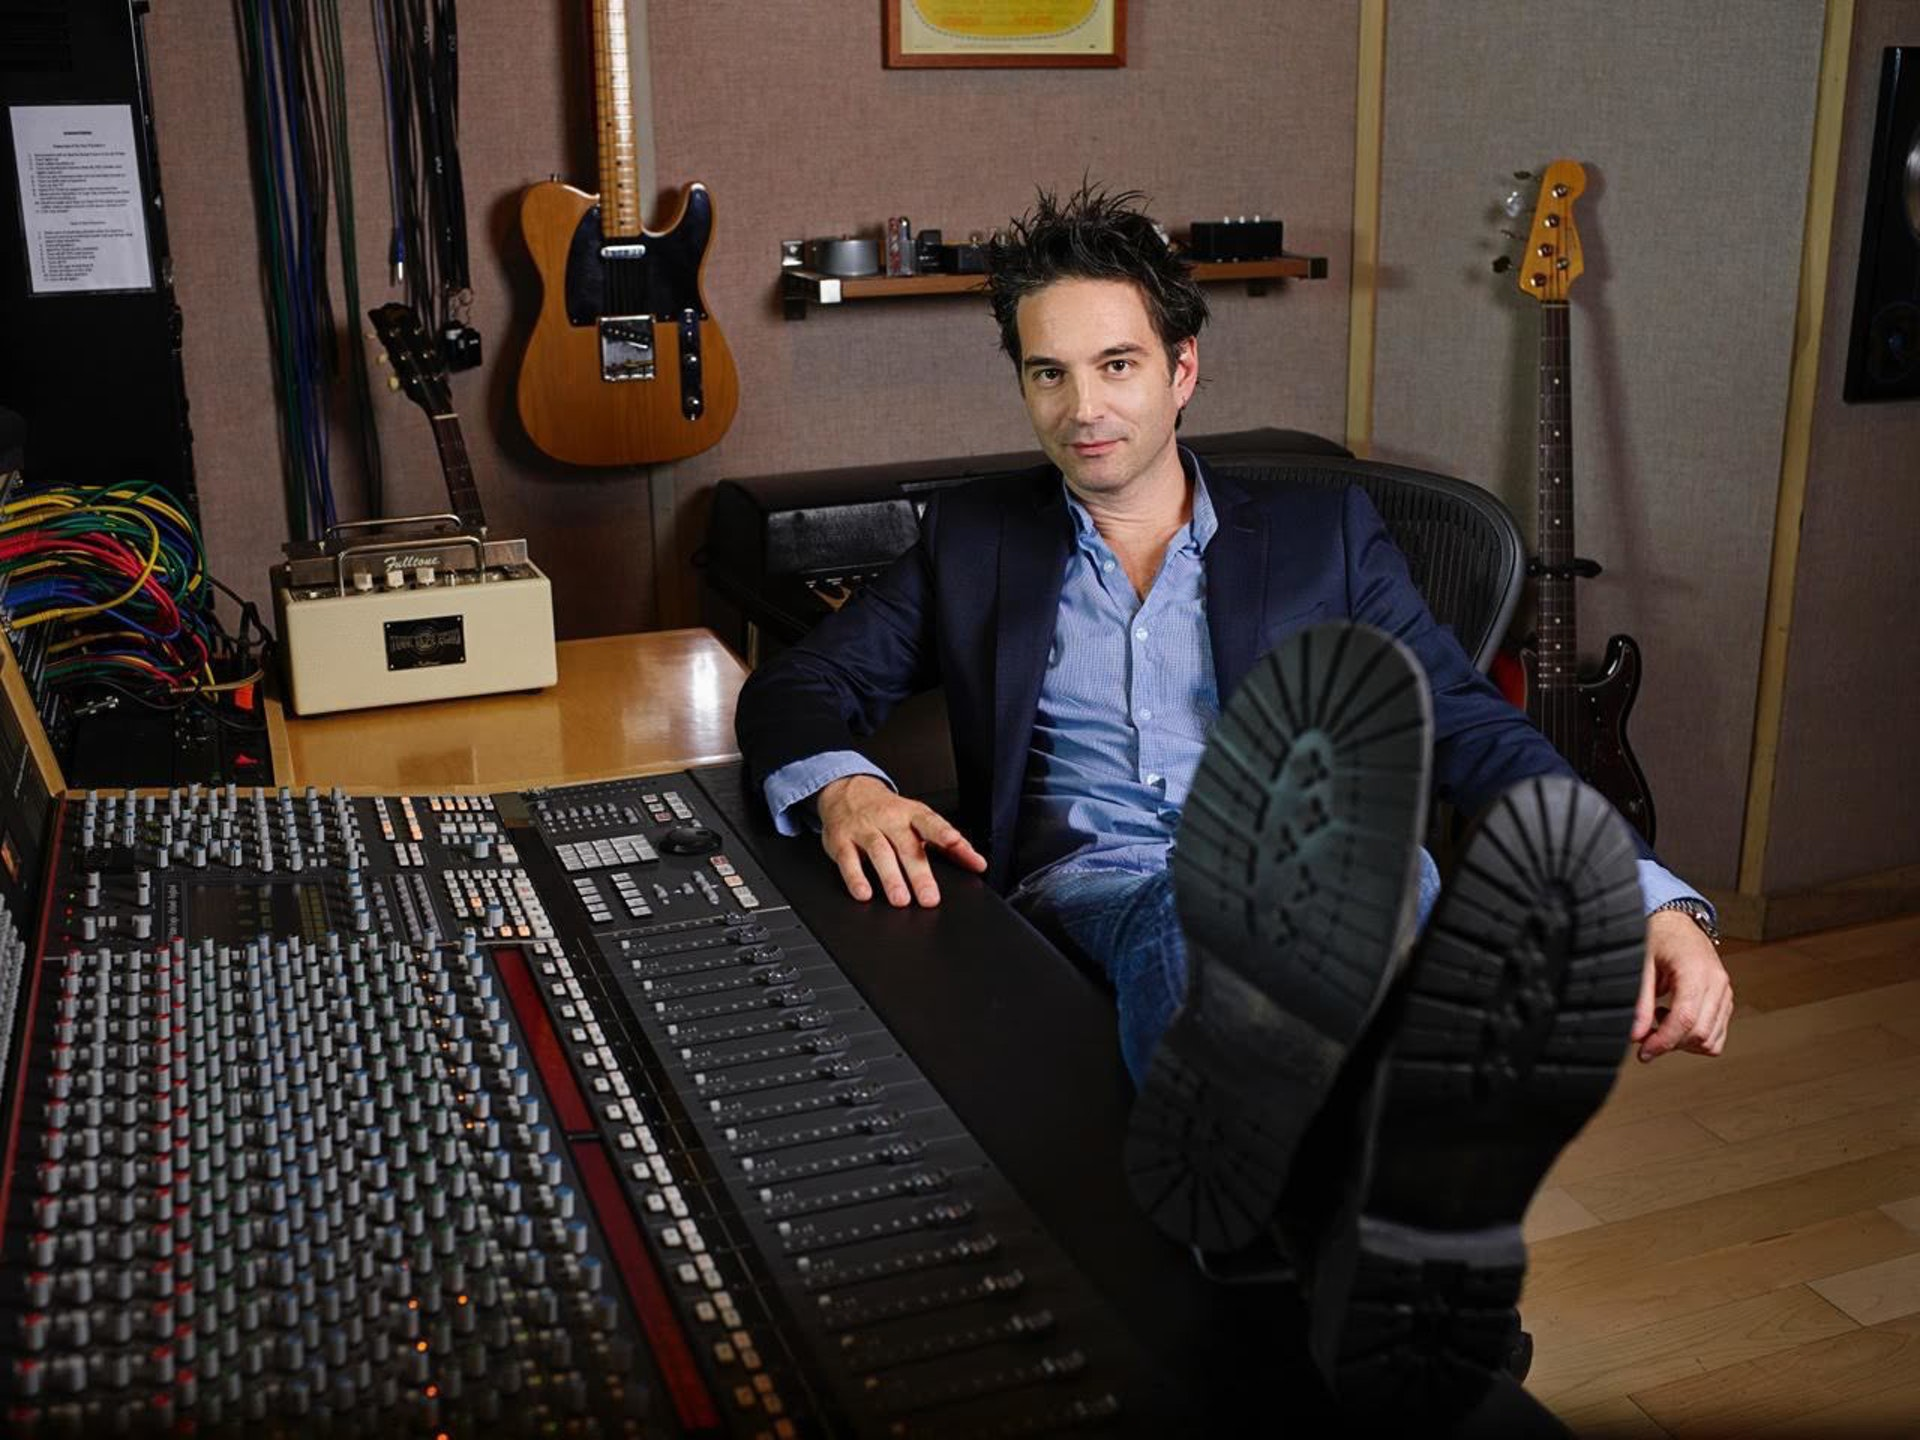 JOB HACKS | Jeff Russo is Composing FX's Mutant Drama 'Legion'